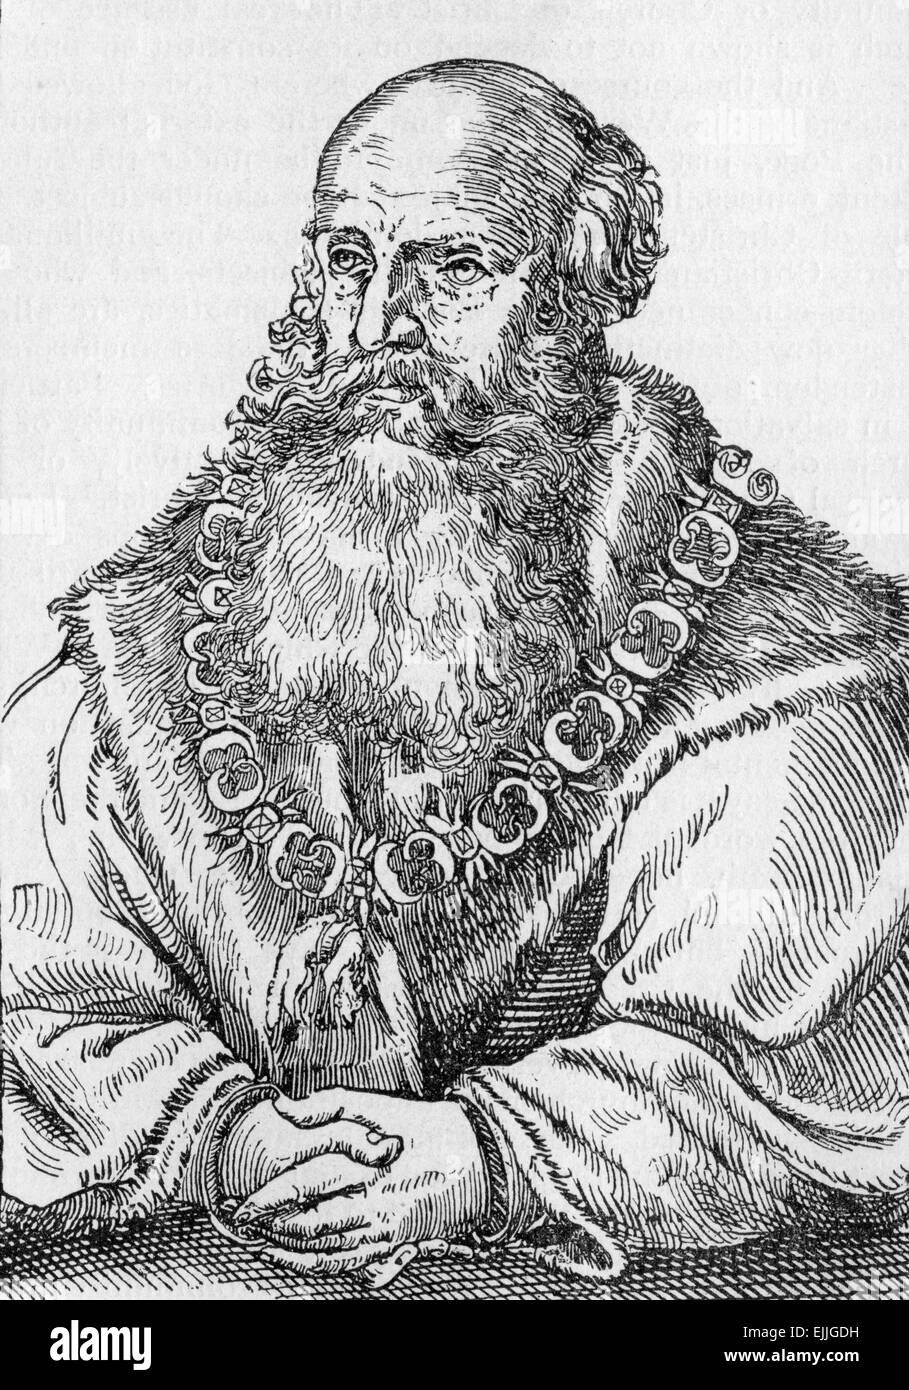 George the Bearded, Duke of Saxony (1471 – 1539), was duke of Saxony from 1500 to 1539 - Stock Image